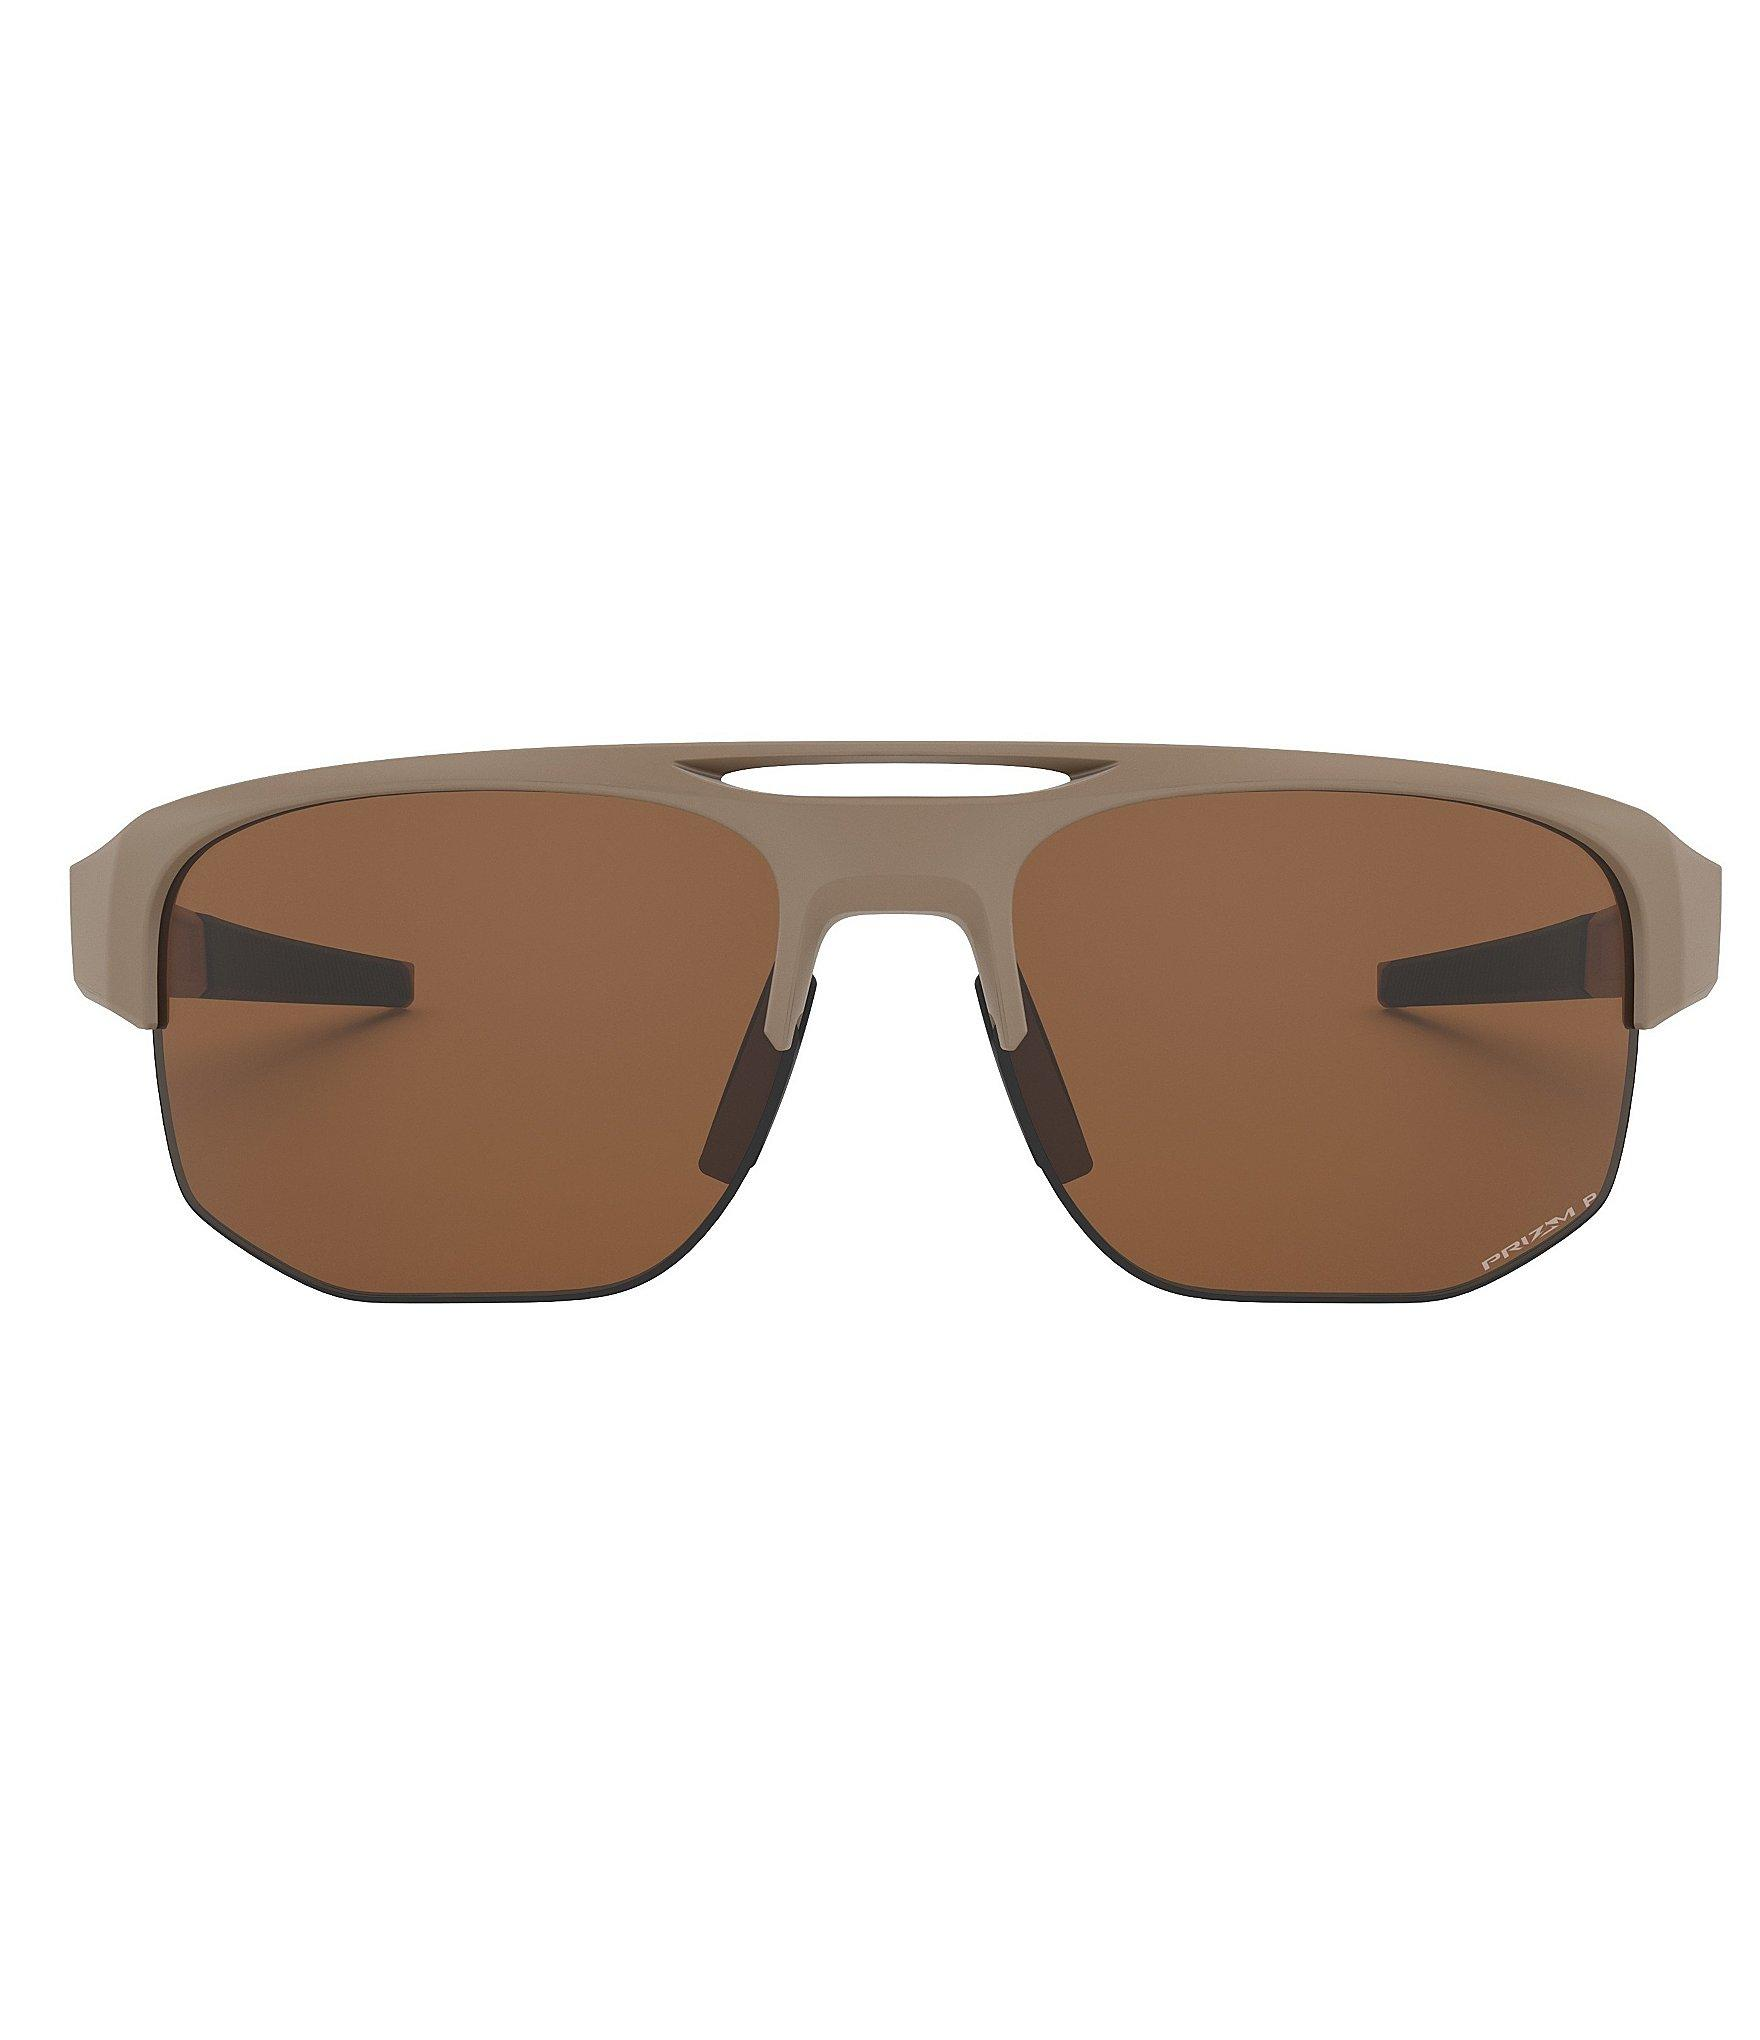 8d50e5c994 Oakley - Brown Mercenary Matte Polarized Prizm Wrap Sunglasses for Men -  Lyst. View fullscreen